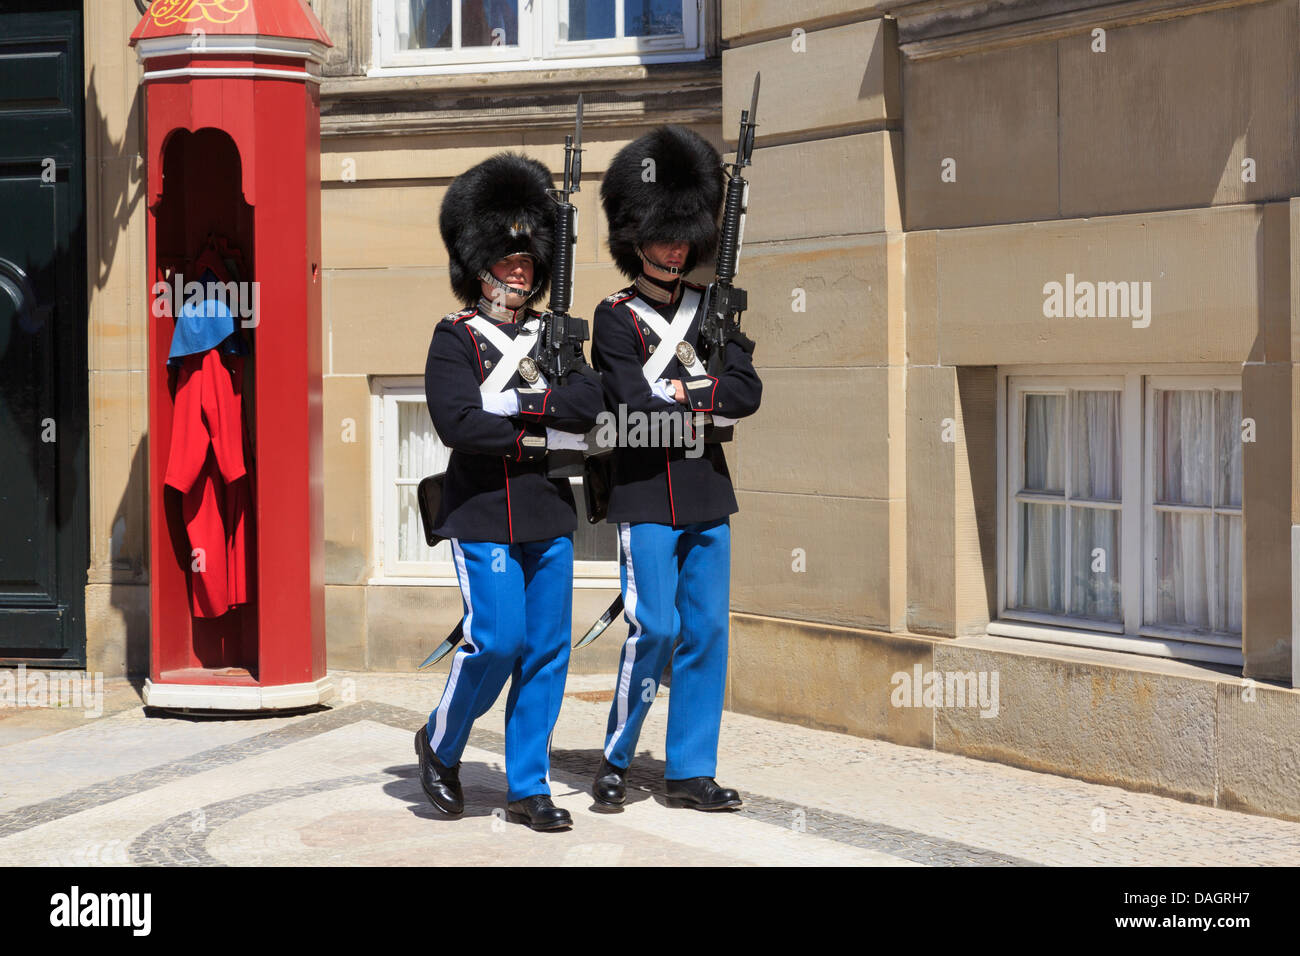 Deux gardes de faction ou Palais Royal d'Amalienborg gardiennage résidence officielle de la reine du Danemark Photo Stock